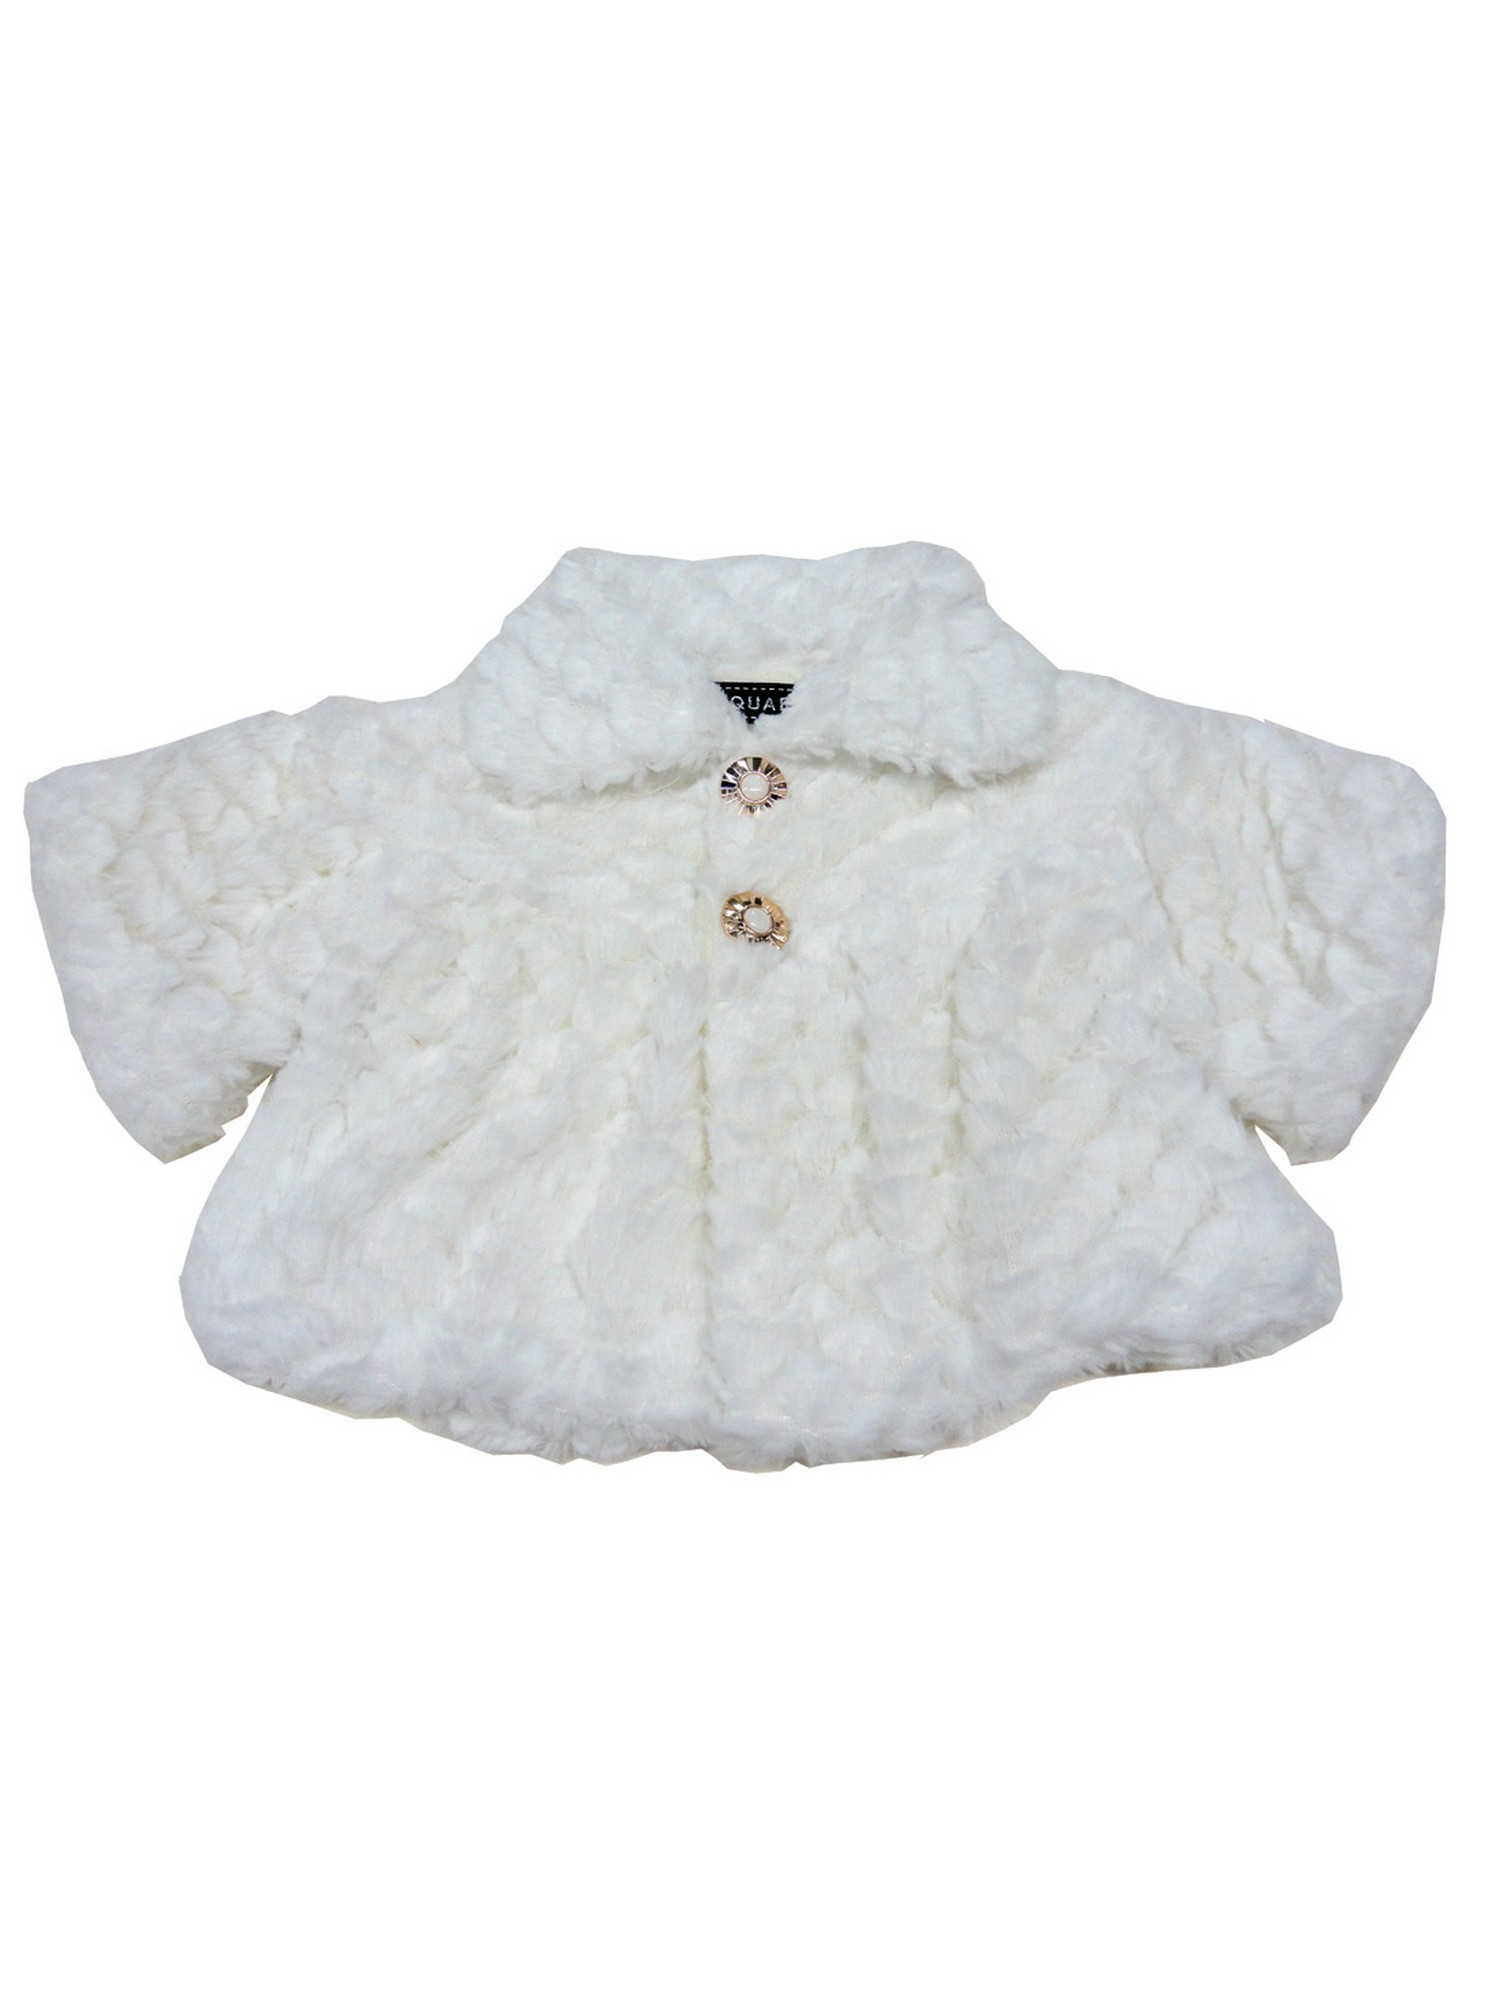 Baby Girls White Swirl Soft Texture Button Closure Faux Fur Jacket